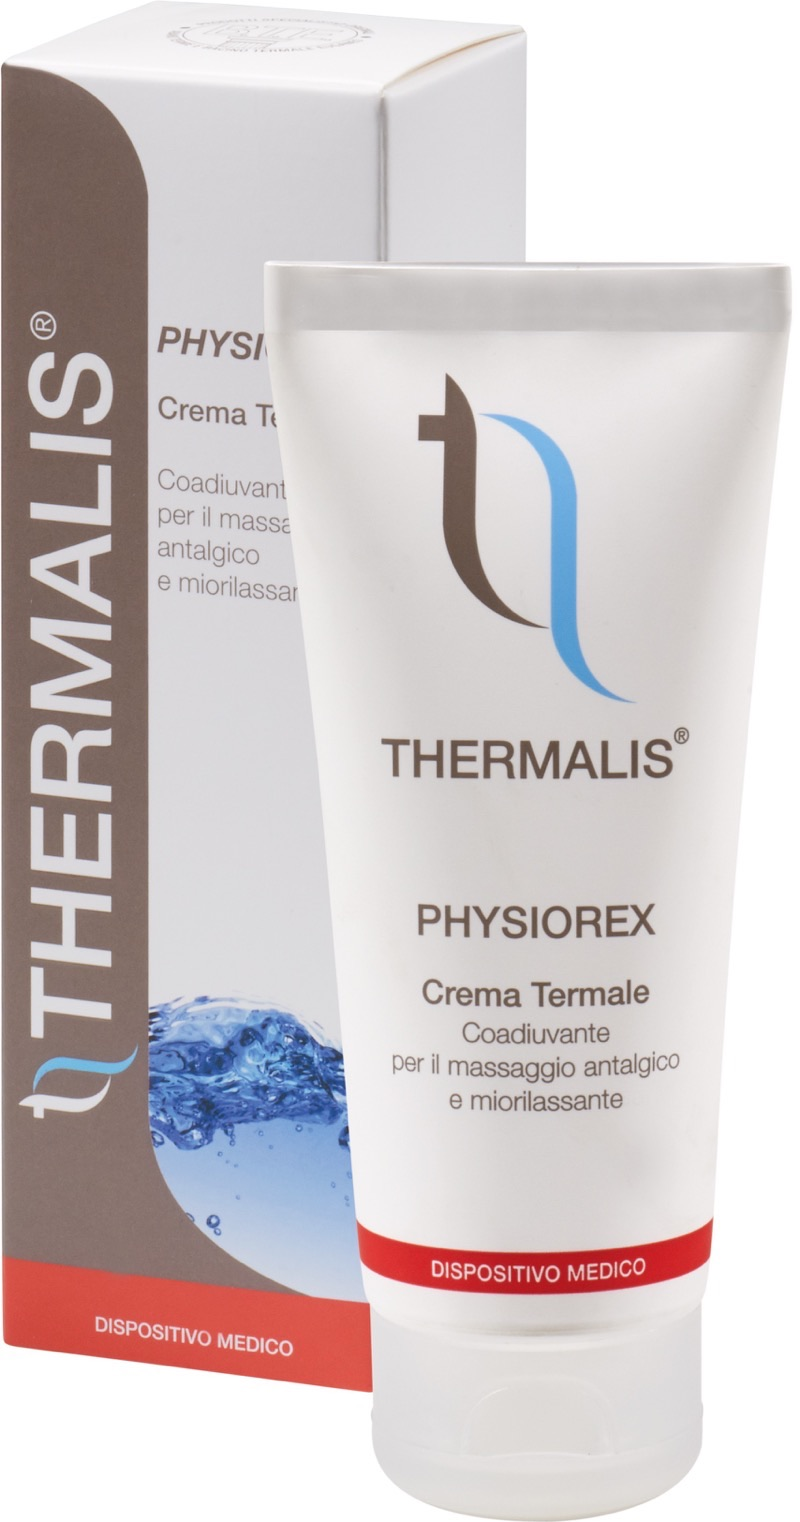 Creme thermale physiorex